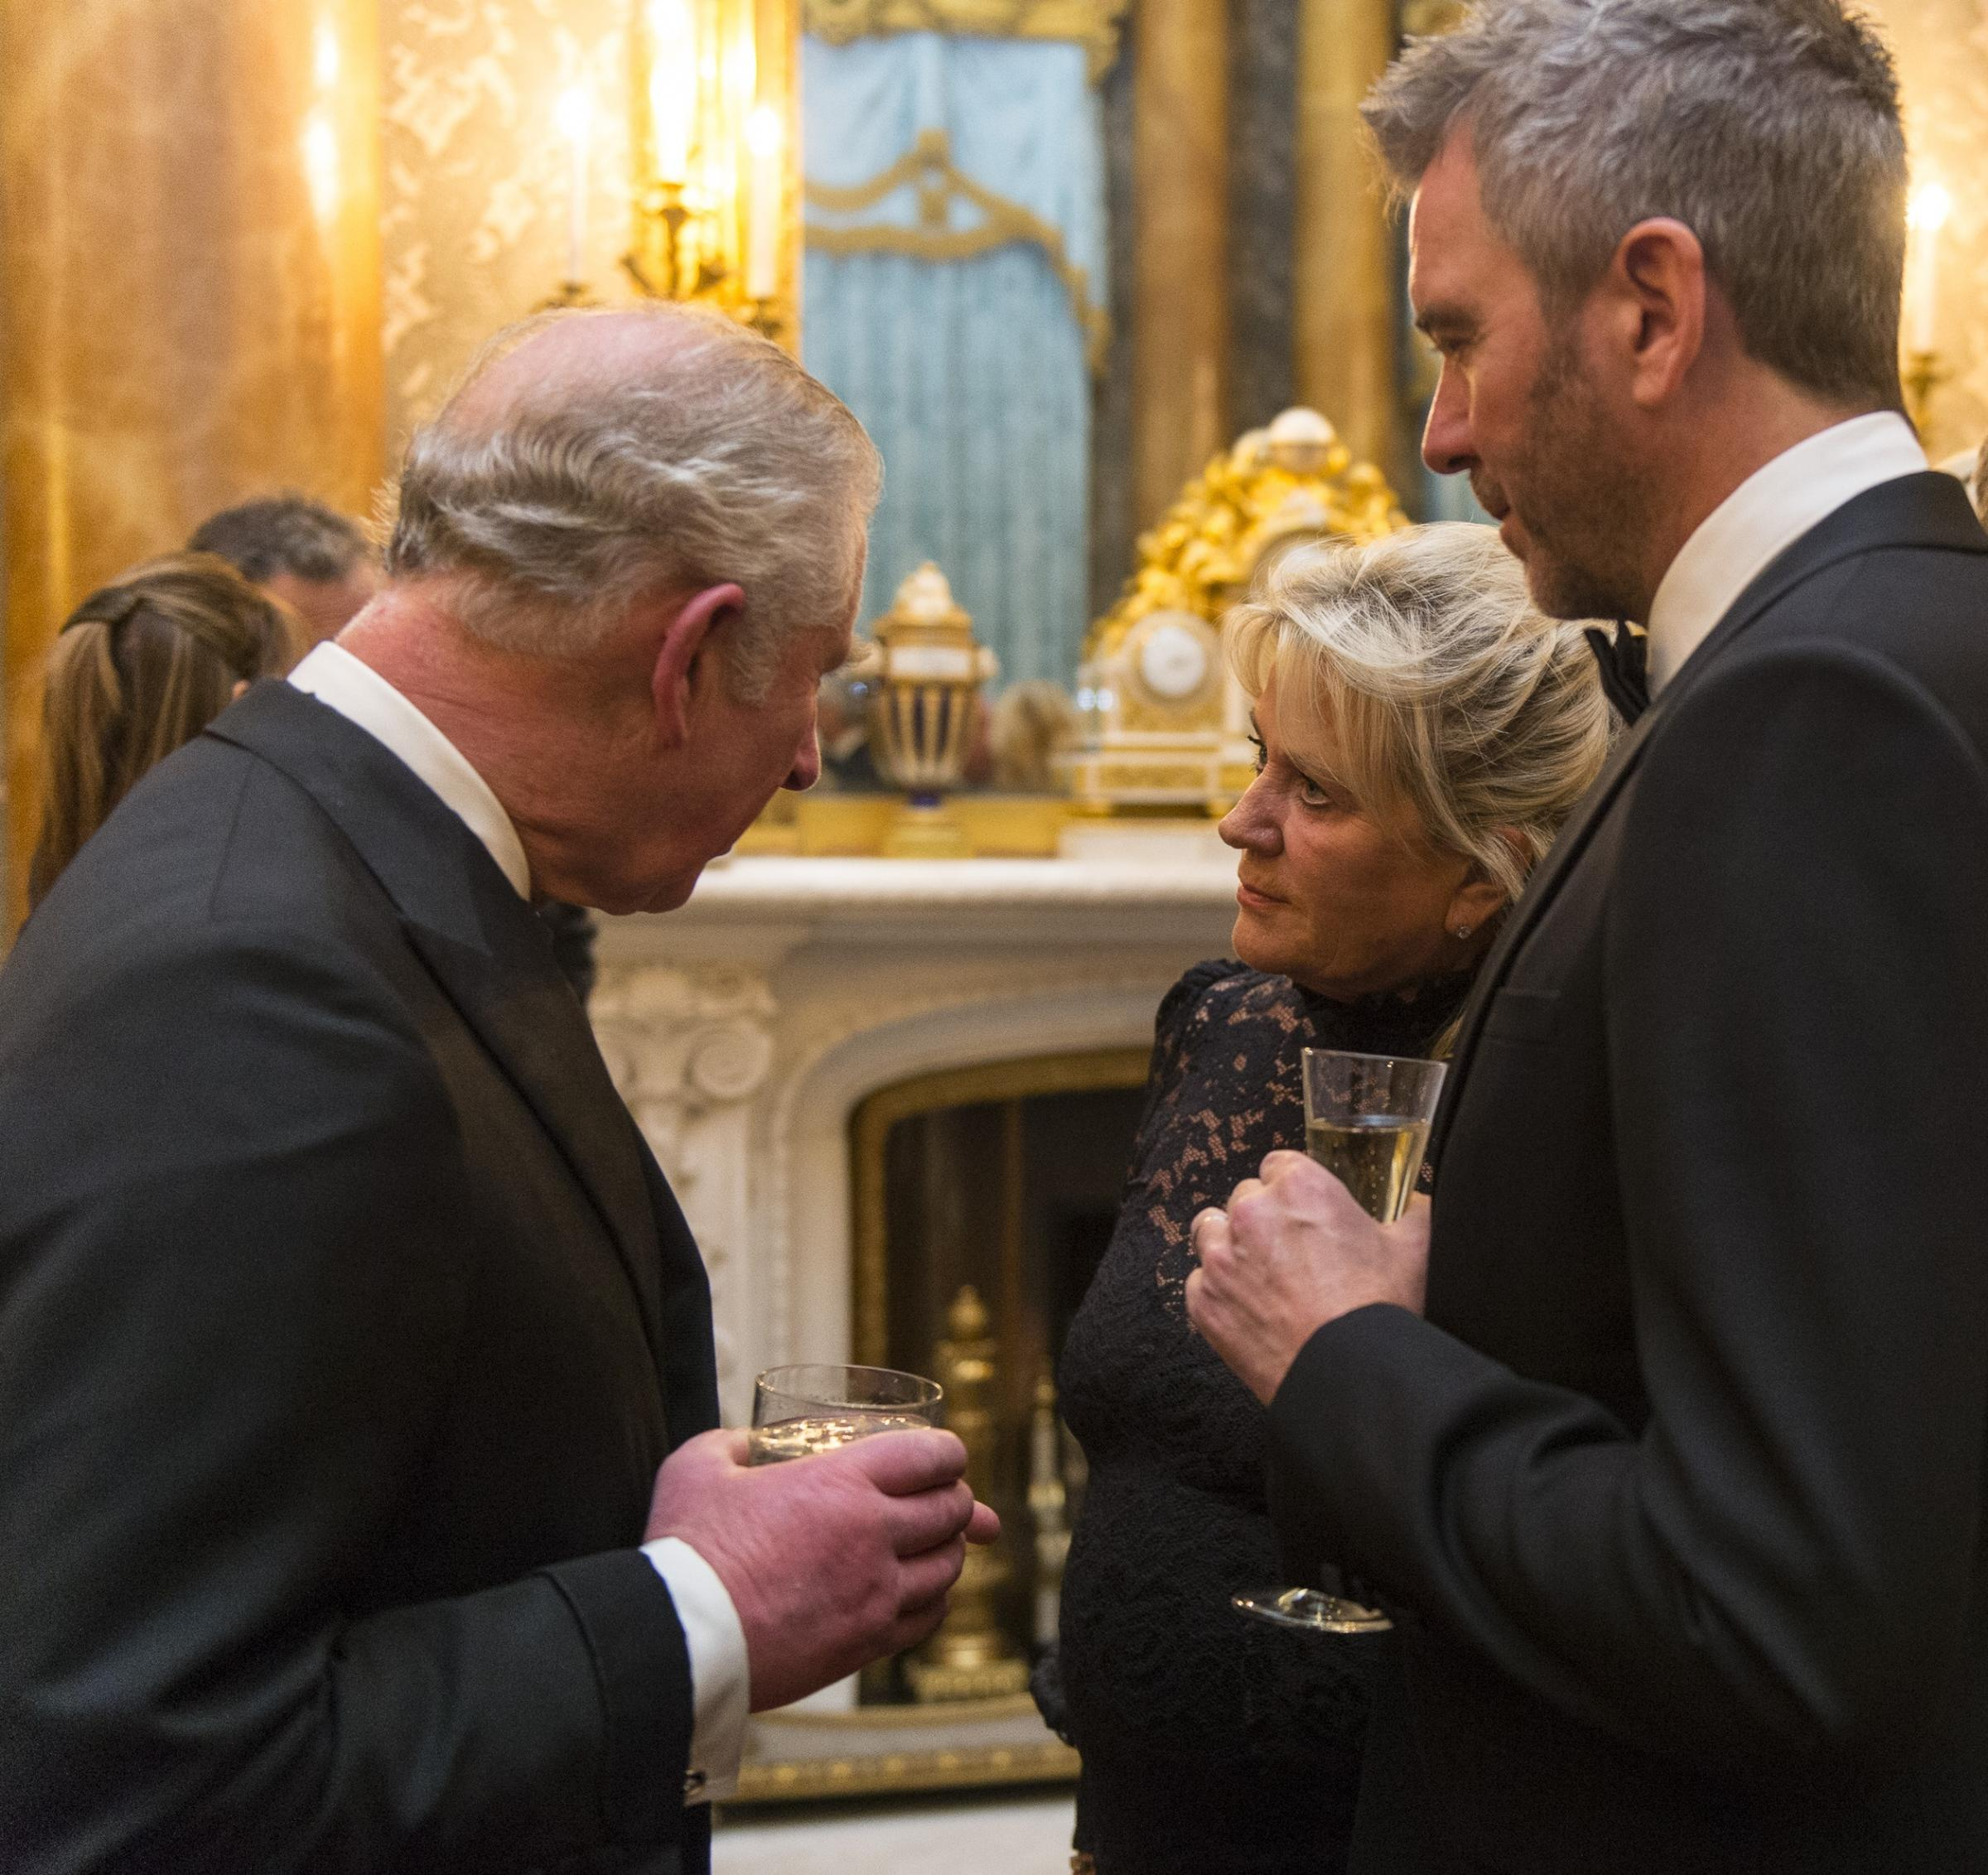 Helen McCardle and her son Mark meeting the Prince Charles during the Prince's Trust dinner at Buckingham Palace